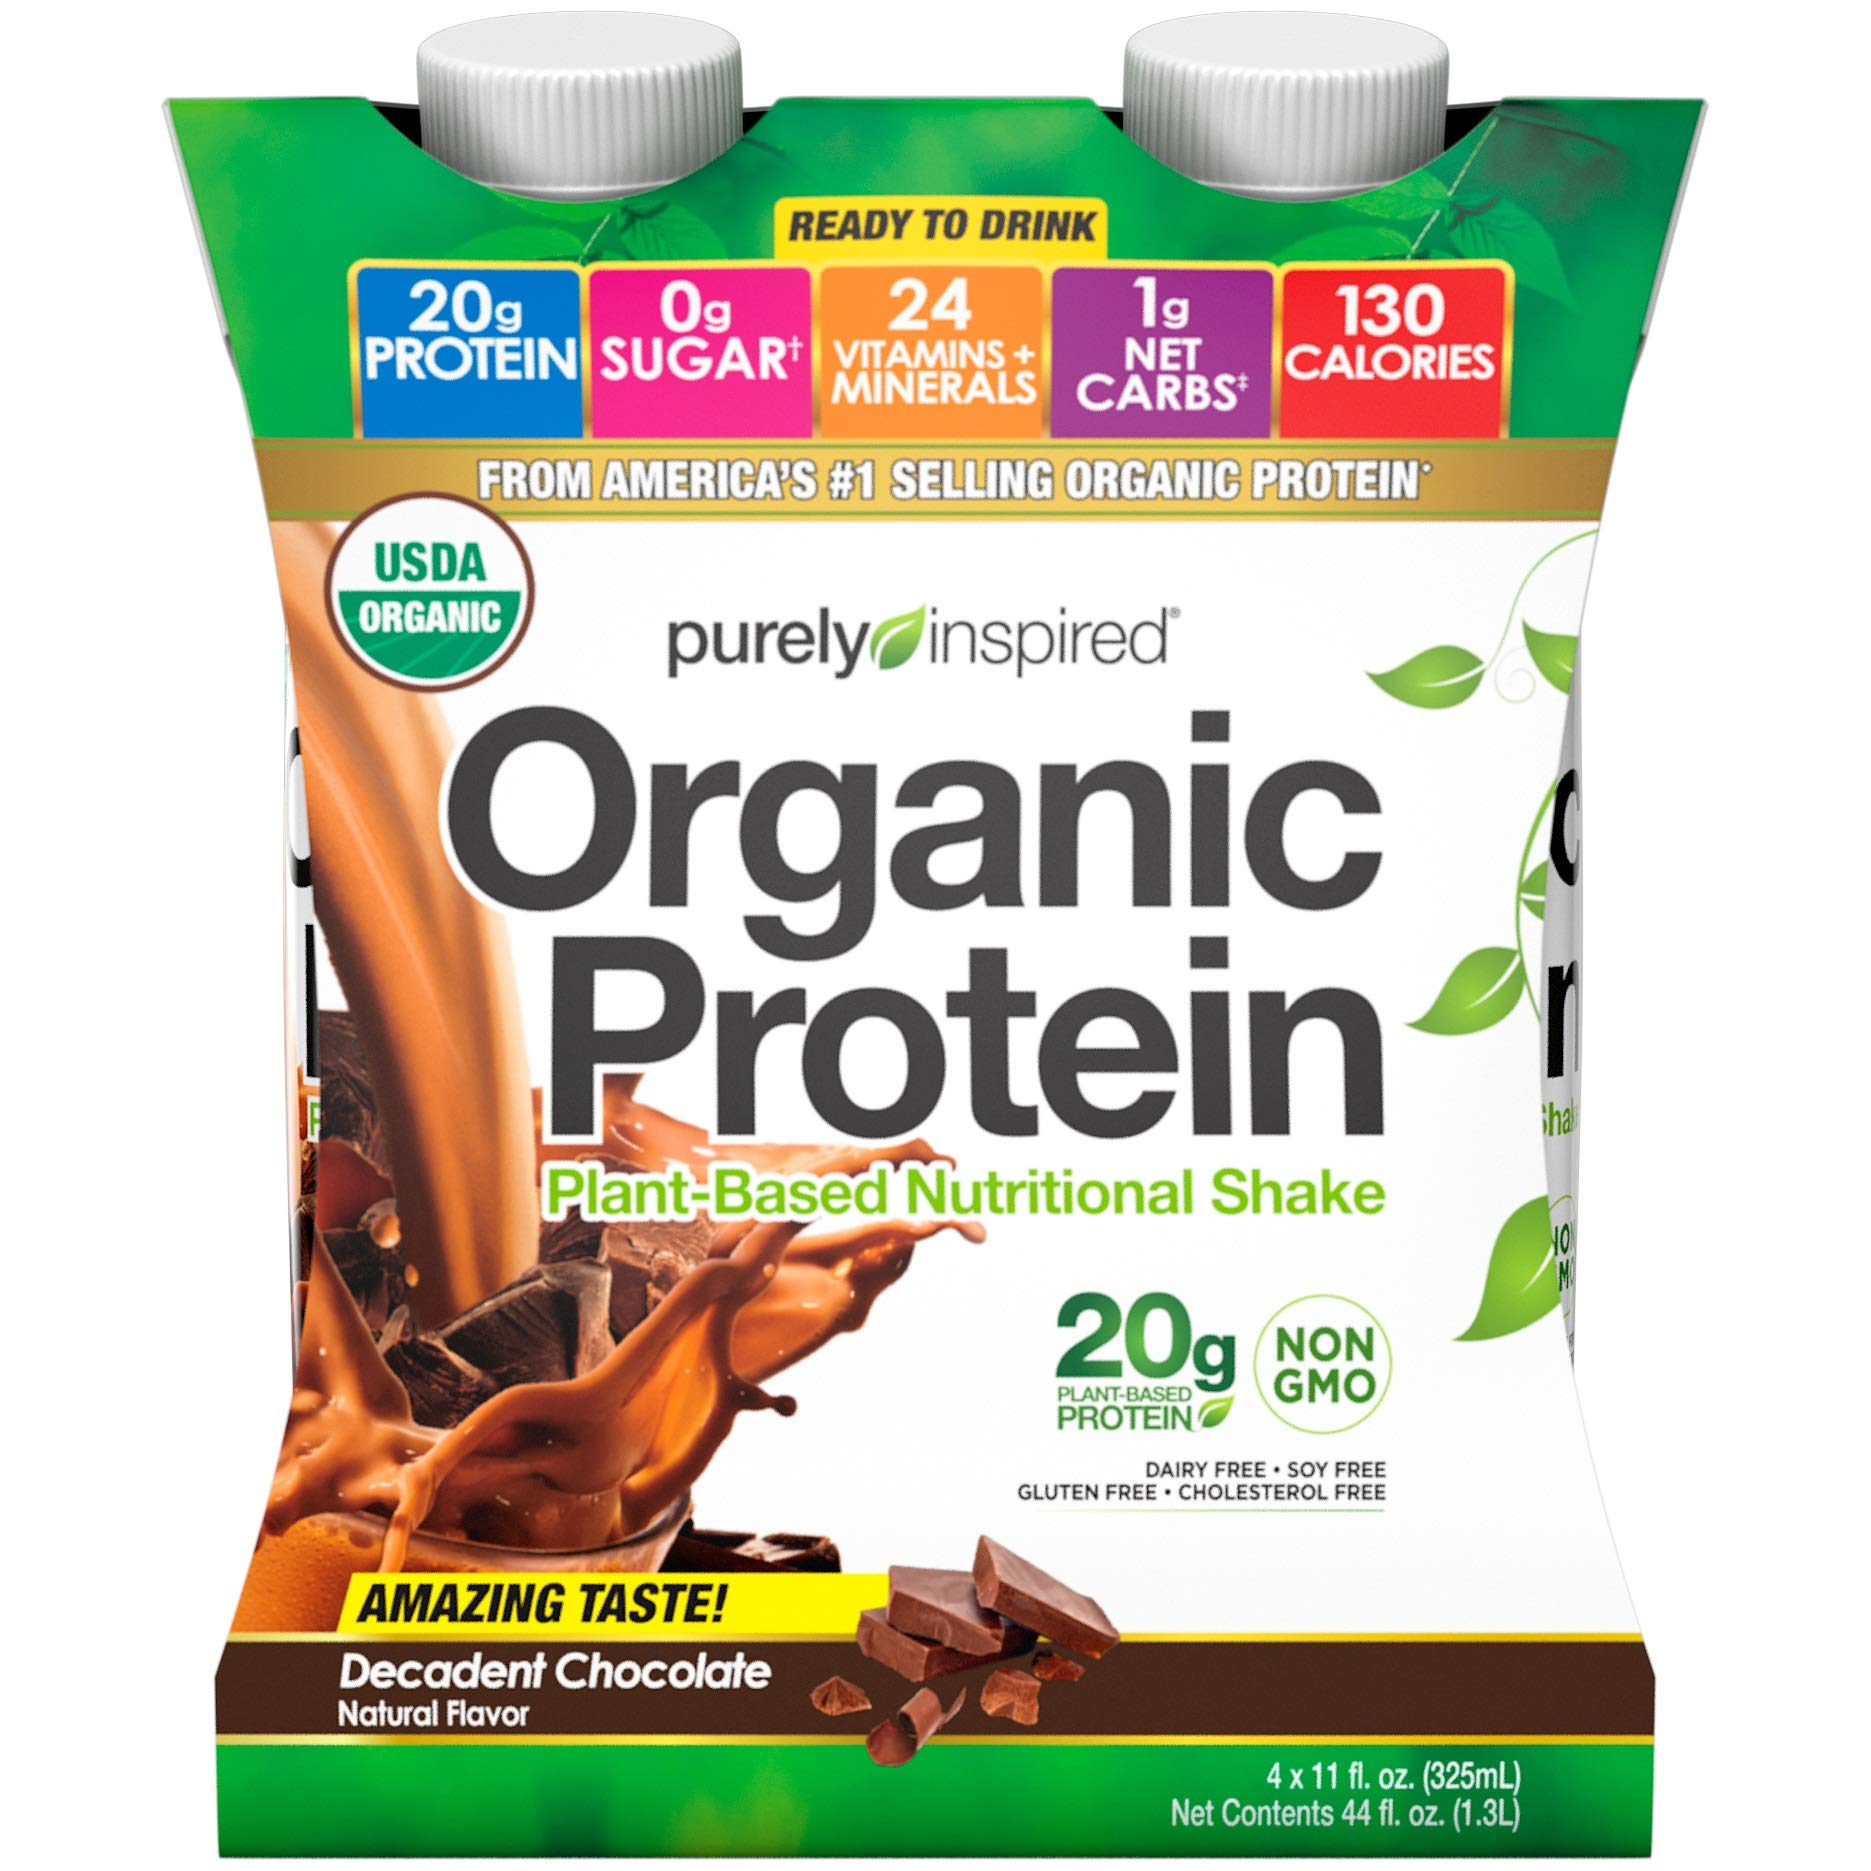 Purely Inspired Organic Protein Shake, Ready to Drink, 20g Plant Based Protein, No Sugar, Low Carbs, Naturally Flavored, Decadent Chocolate, 12 Servings (12 x 325mL) by Purely Inspired